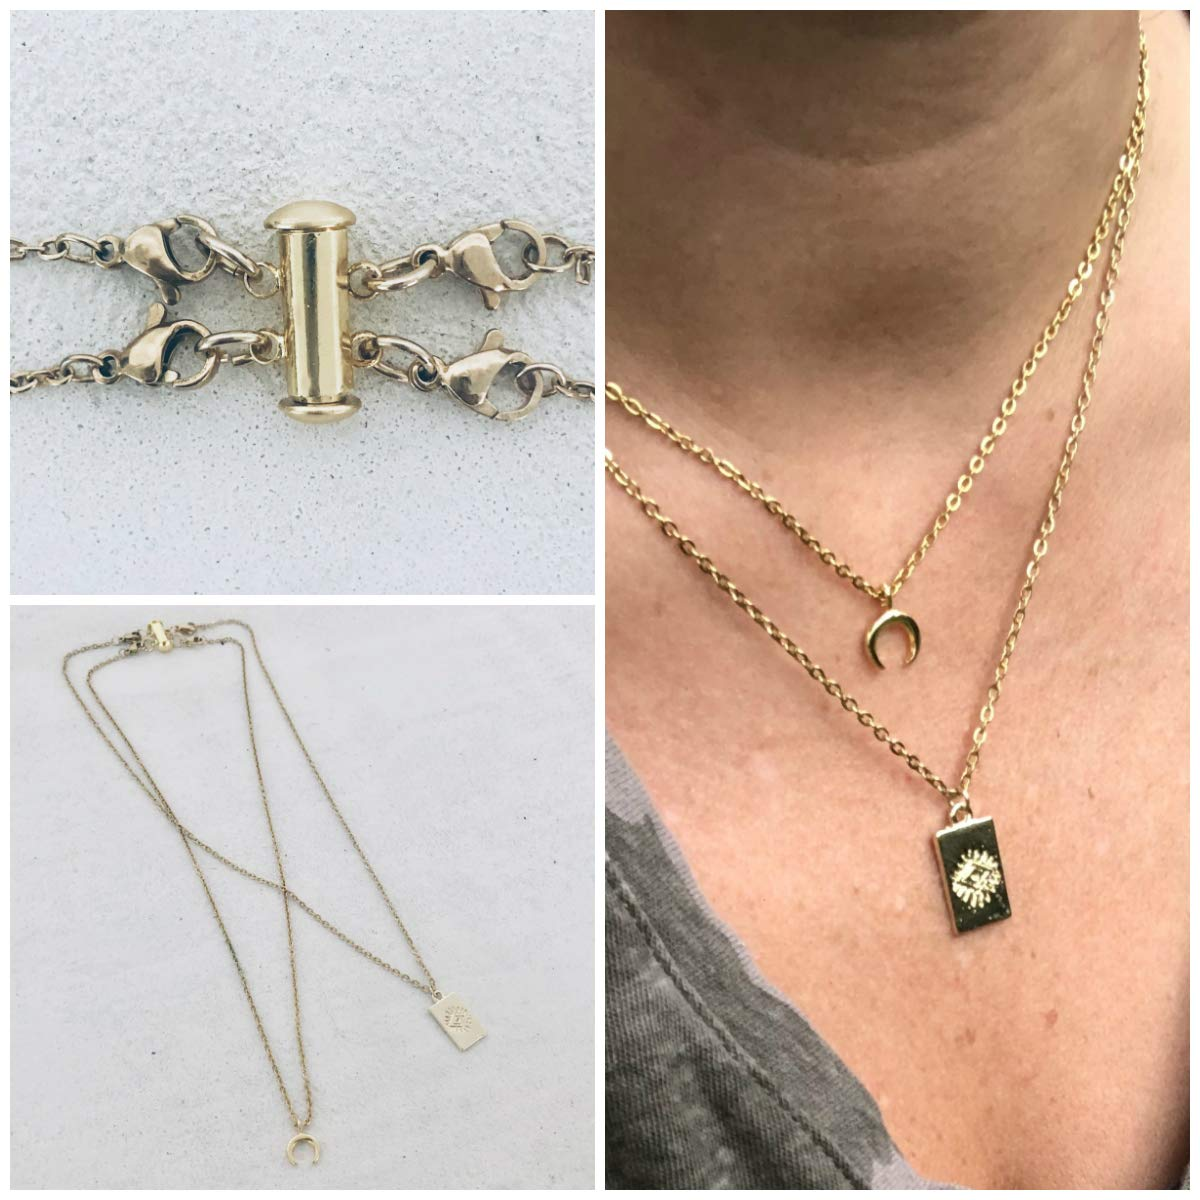 Layering Necklace Spacer Untangle Layered Necklaces Layered Necklace Detangler Multi Strand Necklace Detangler Clasp